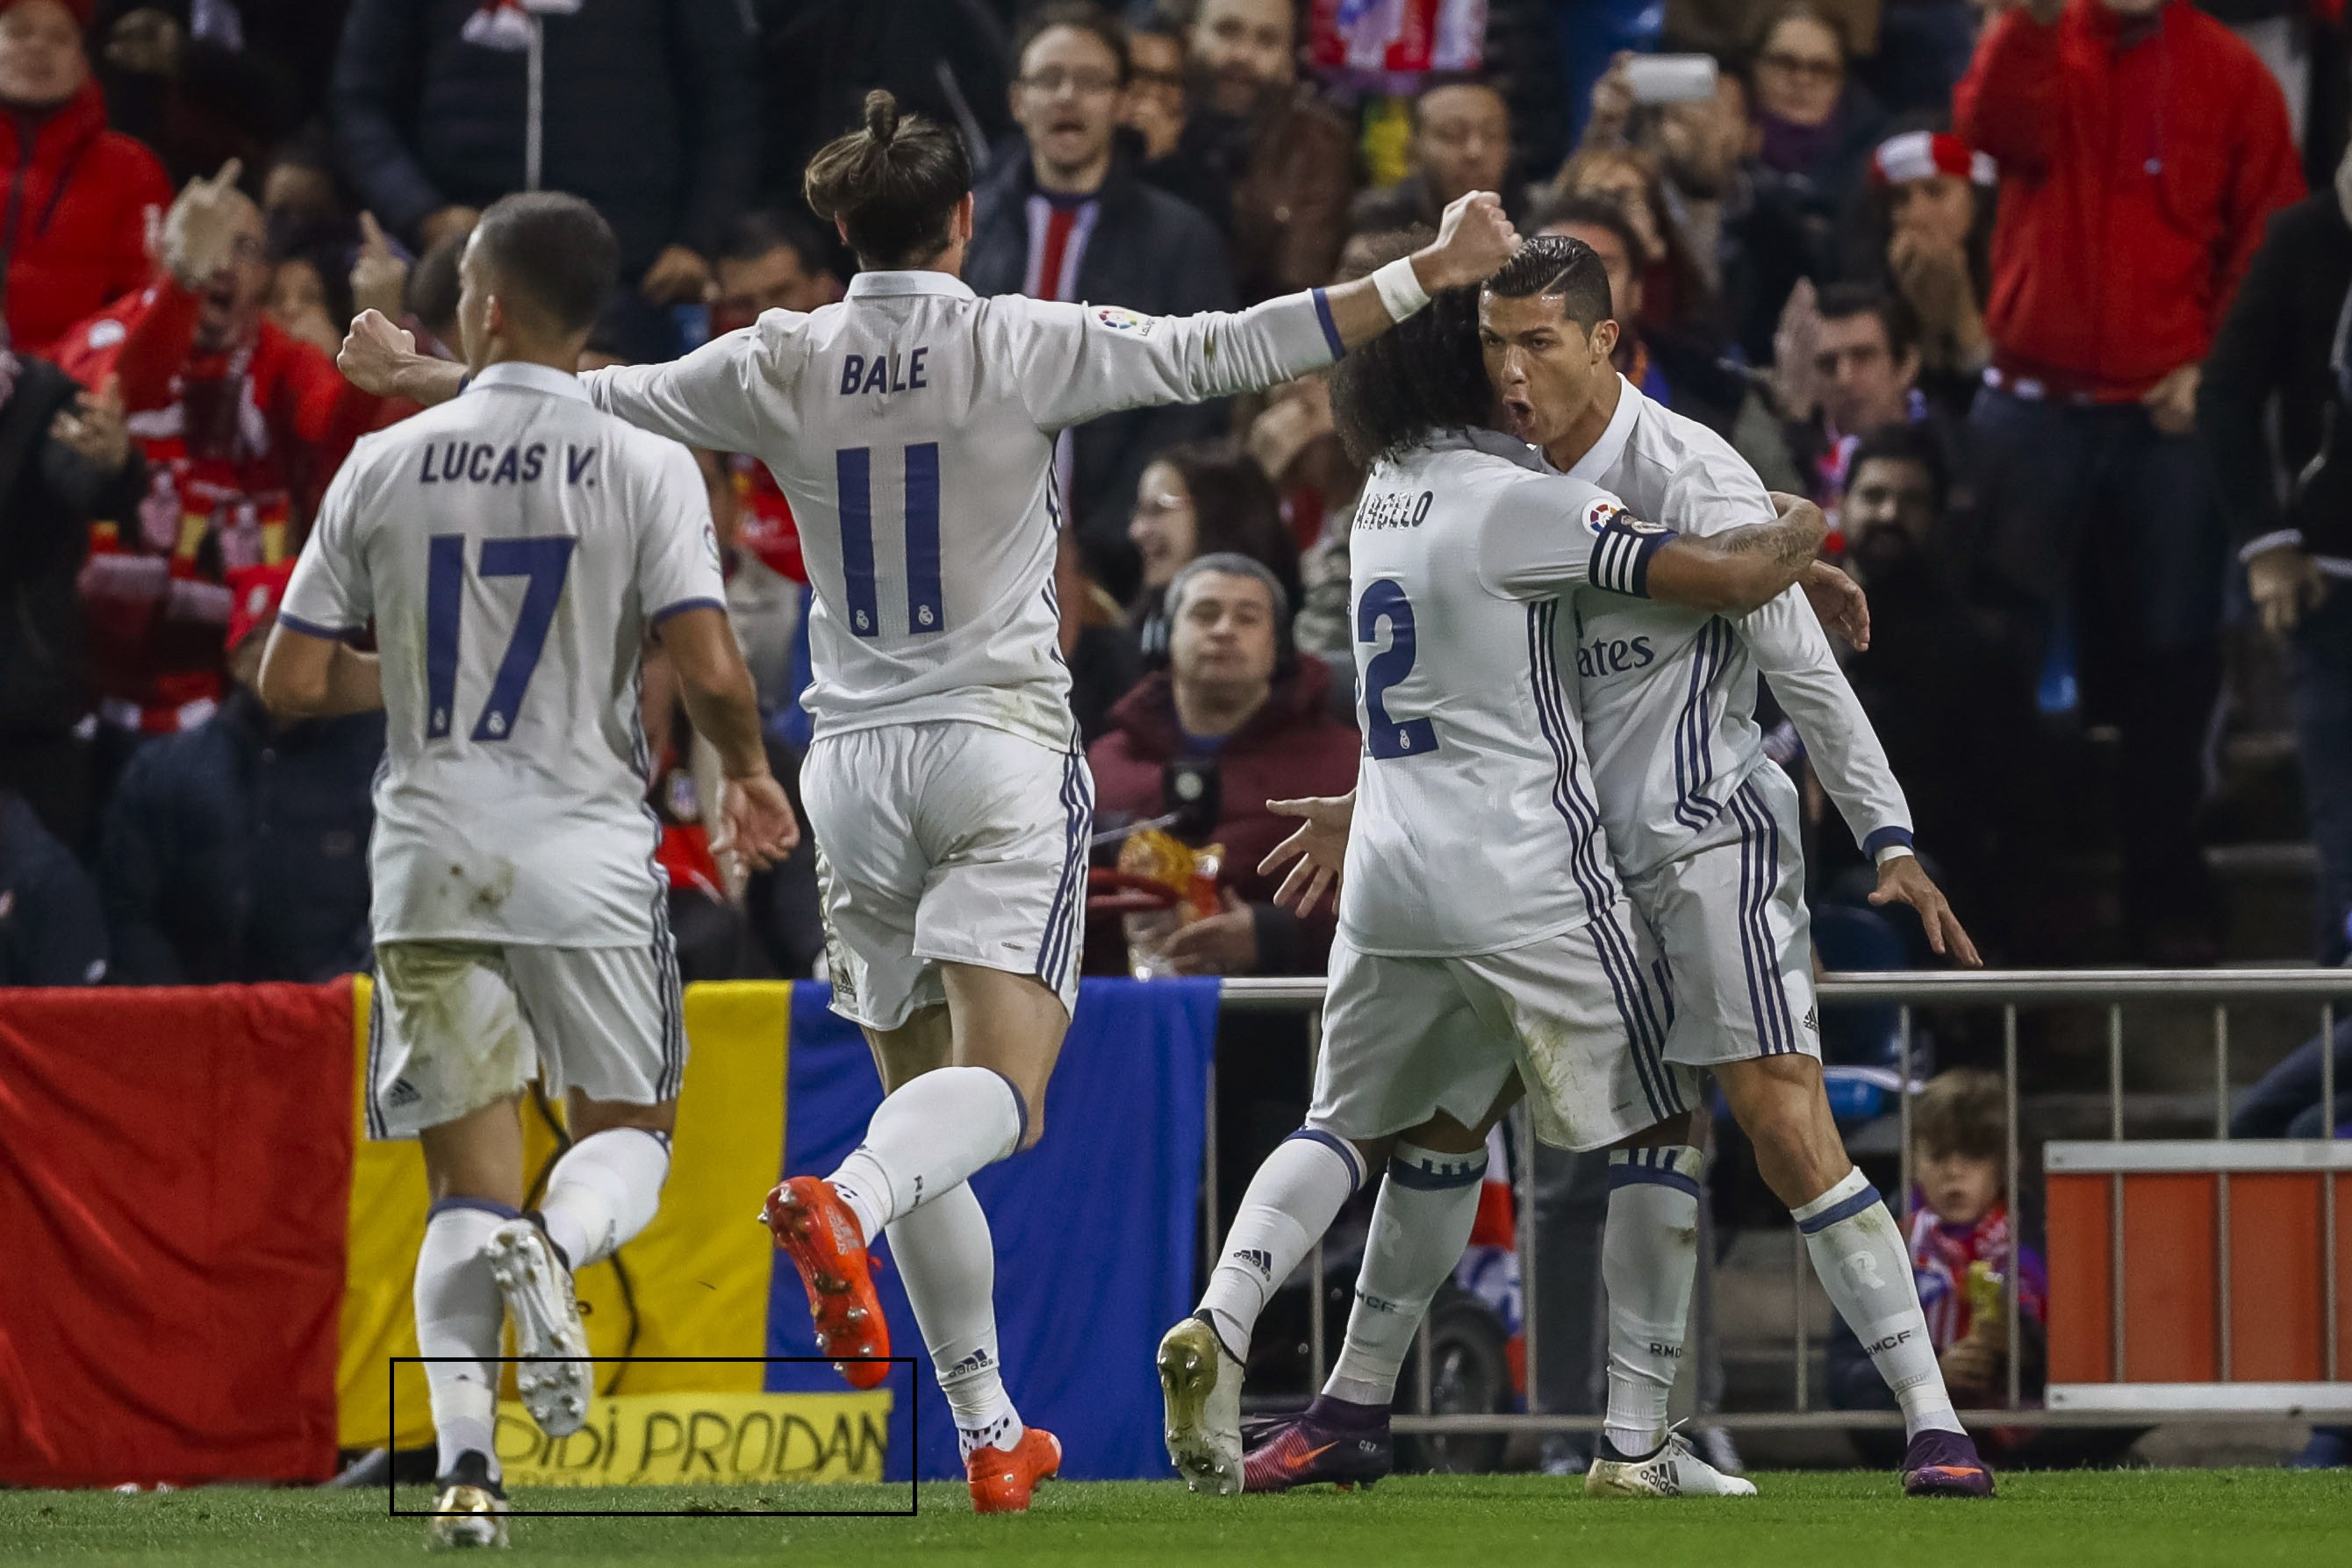 epa05638820 Real Madrid's Portuguese striker Cristiano Ronaldo (R) celebrates with his team mates after scoring the 0-1 during the Spanish Liga's Primera Division match between Atletico Madrid and Real Madrid at Vicente Calderon stadium in Madrid, central Spain, 19 November 2016. EPA/EMILIO NARANJO